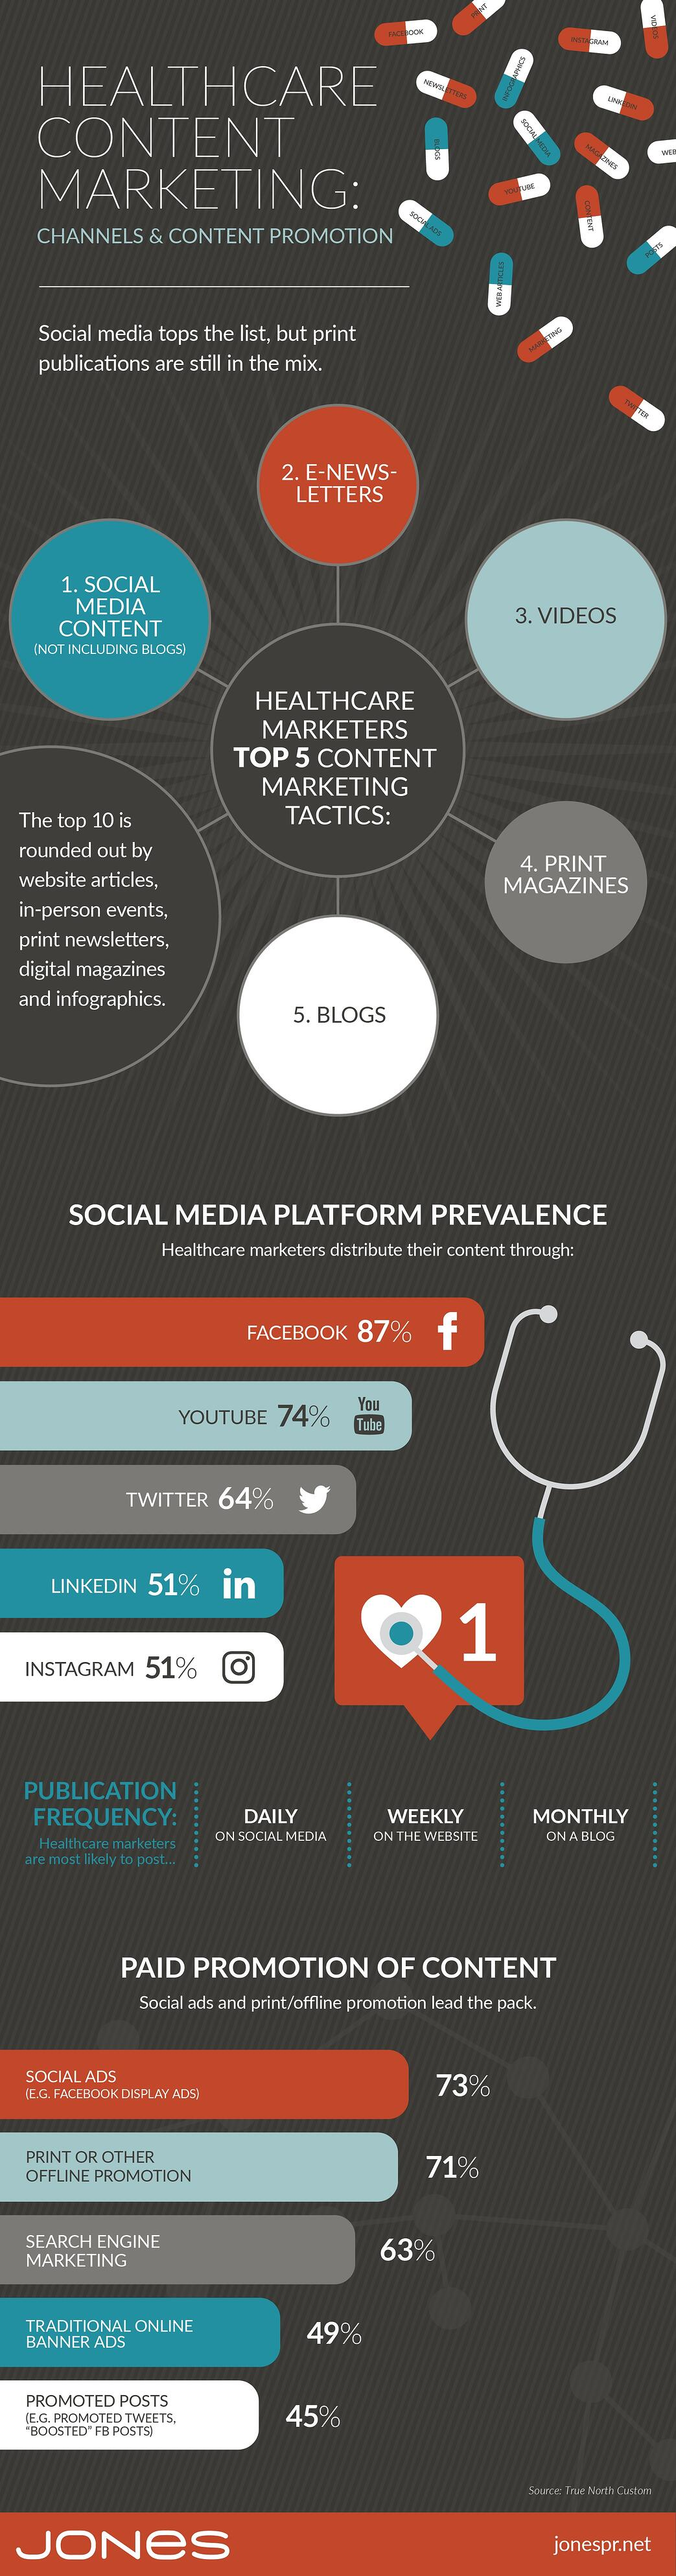 jones-infographic-healthcare-marketing-channels-promotion-v2